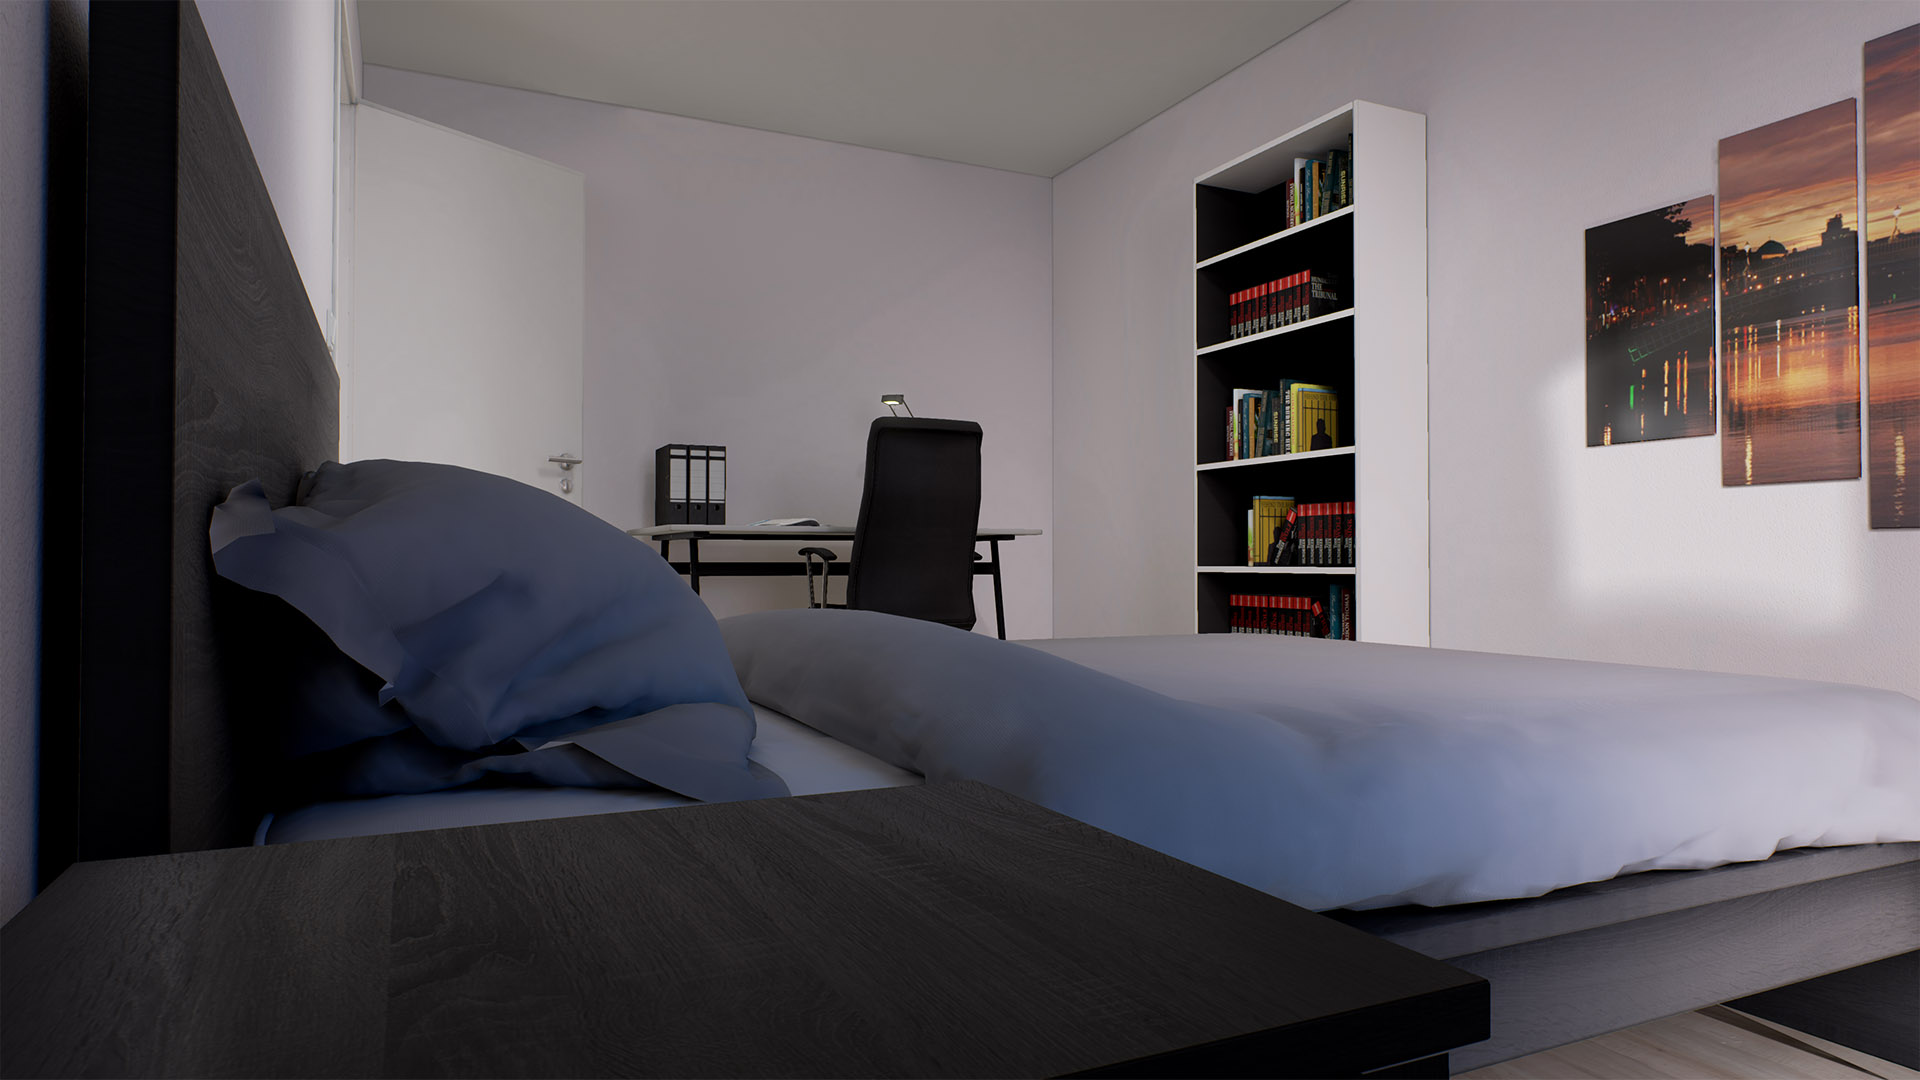 Game engine technology by unreal for Modern flat interior